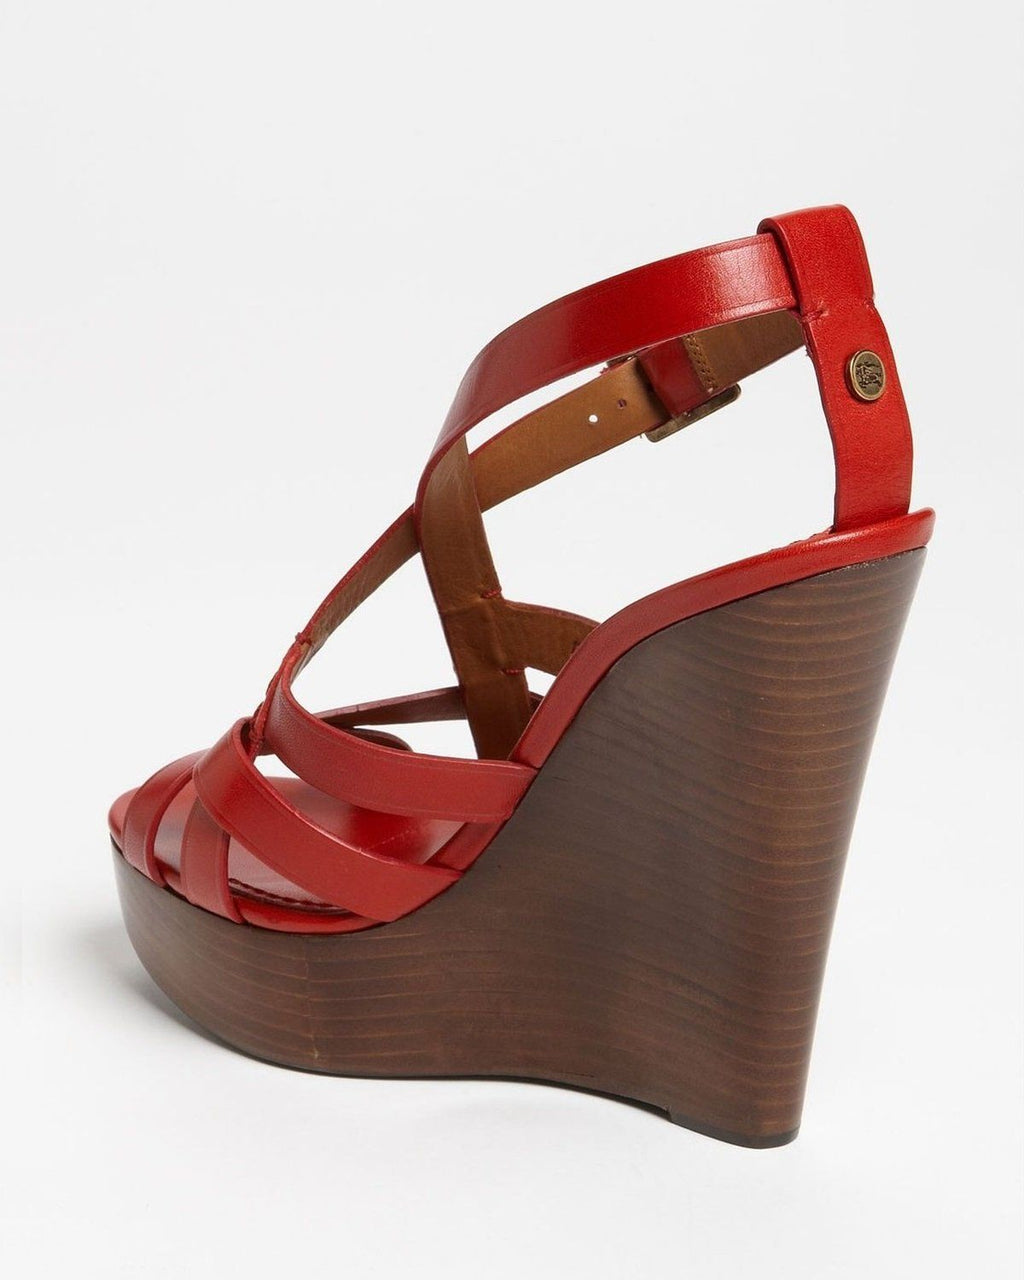 Burberry Red Delamer Platform Wedges Sandal